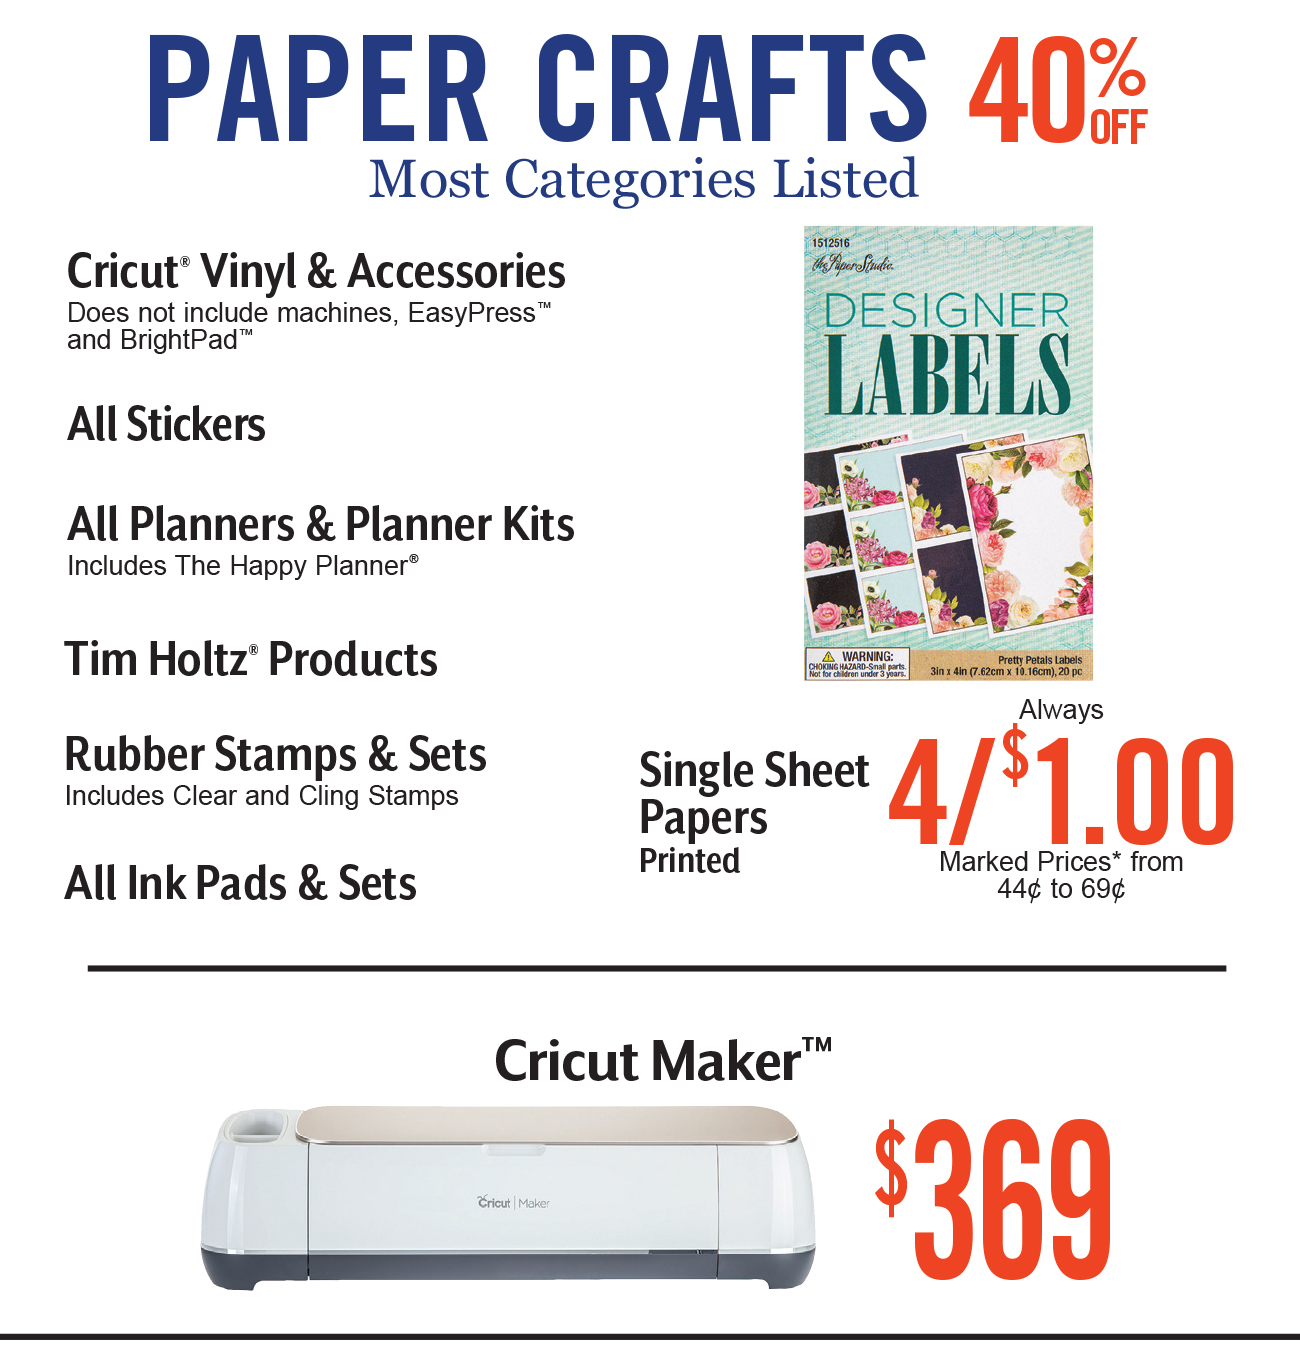 Hobby Lobby: Three Cheers for the 40% Off Coupon | Milled